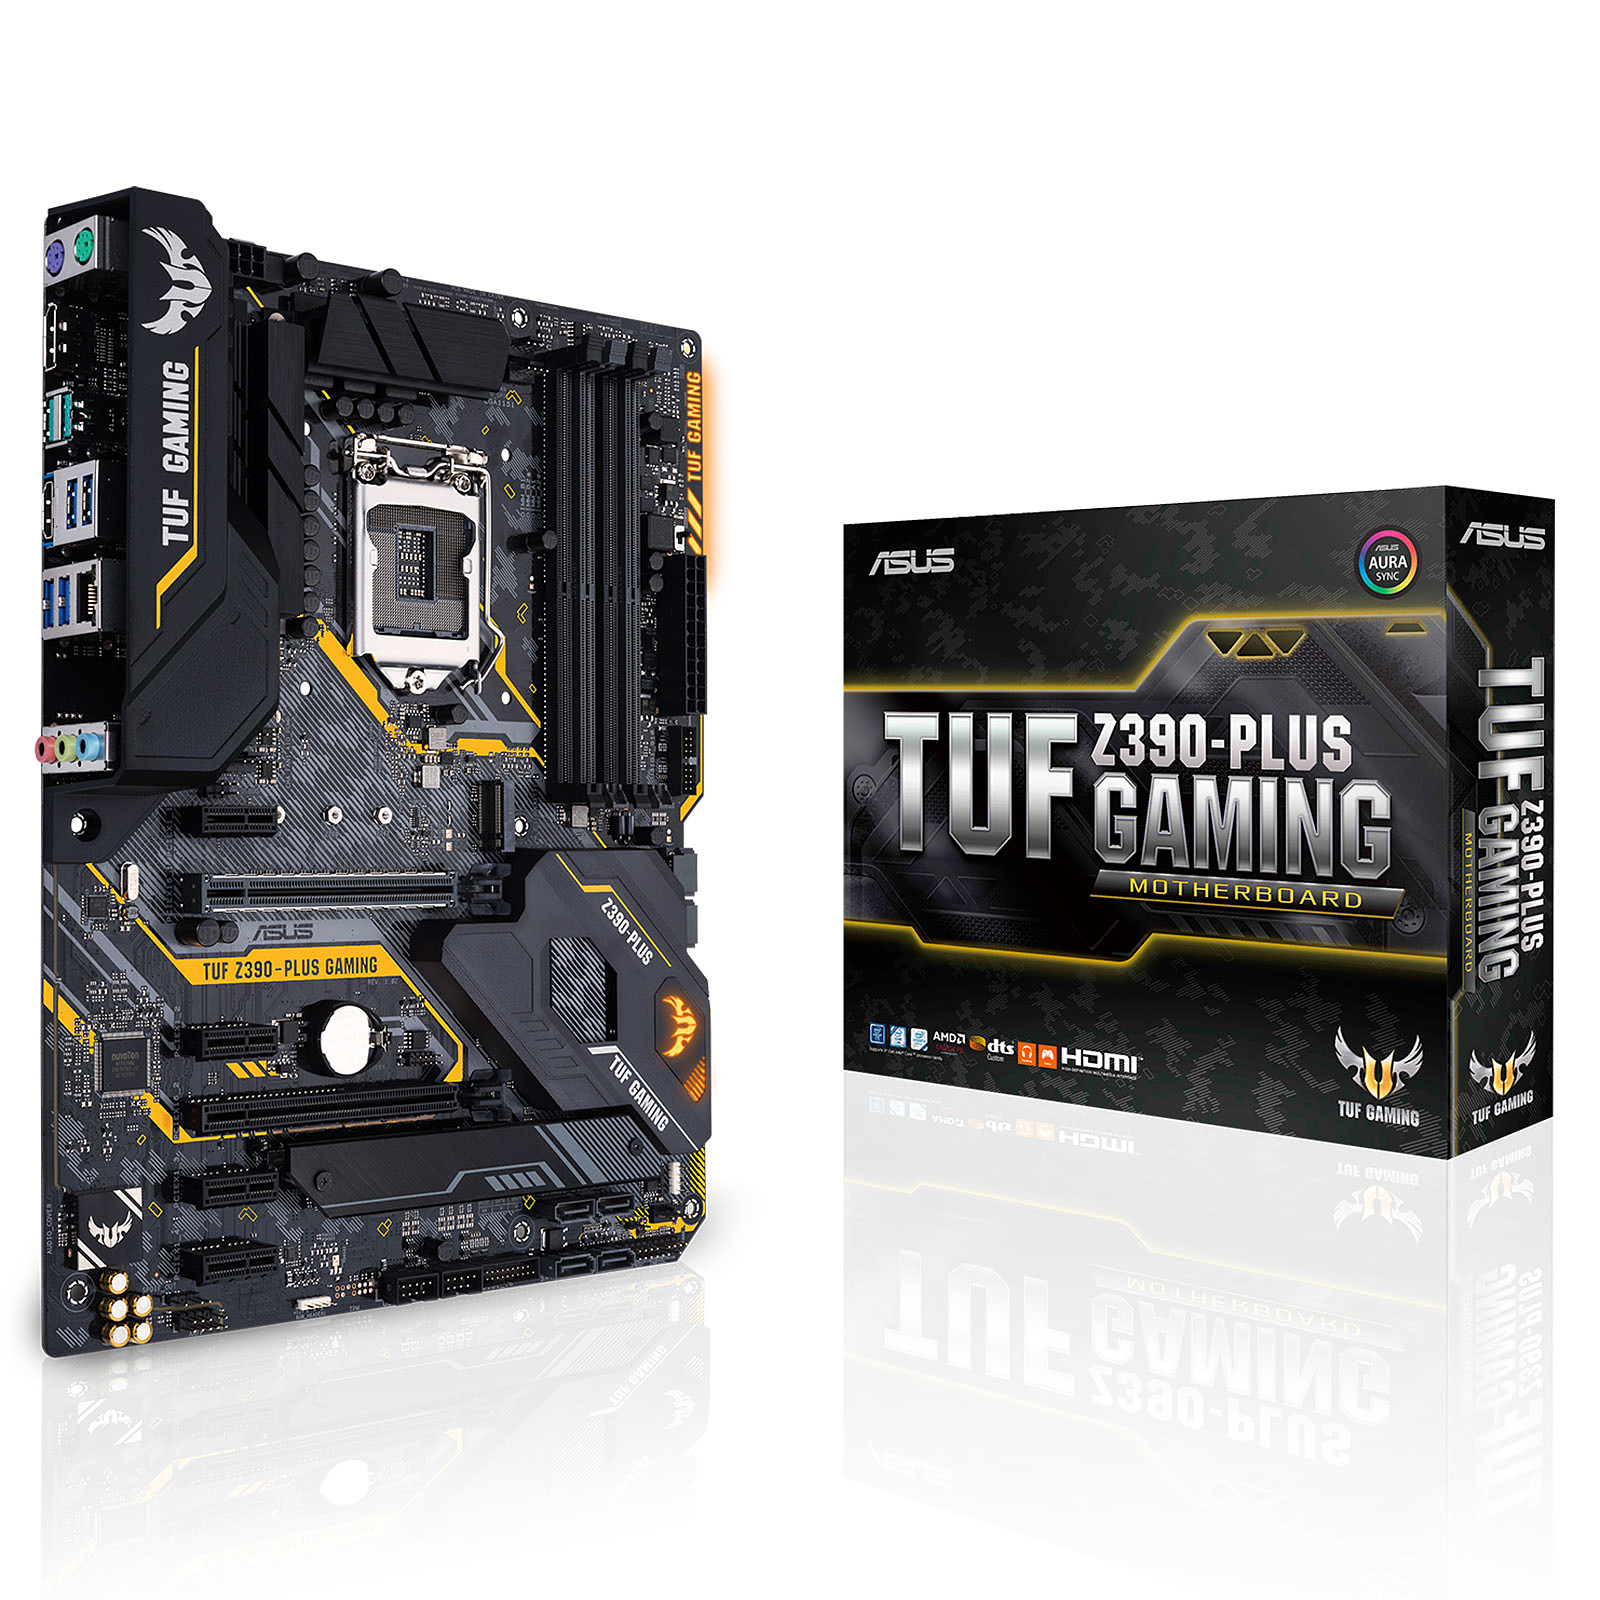 ASUS TUF Z390-PLUS GAMING